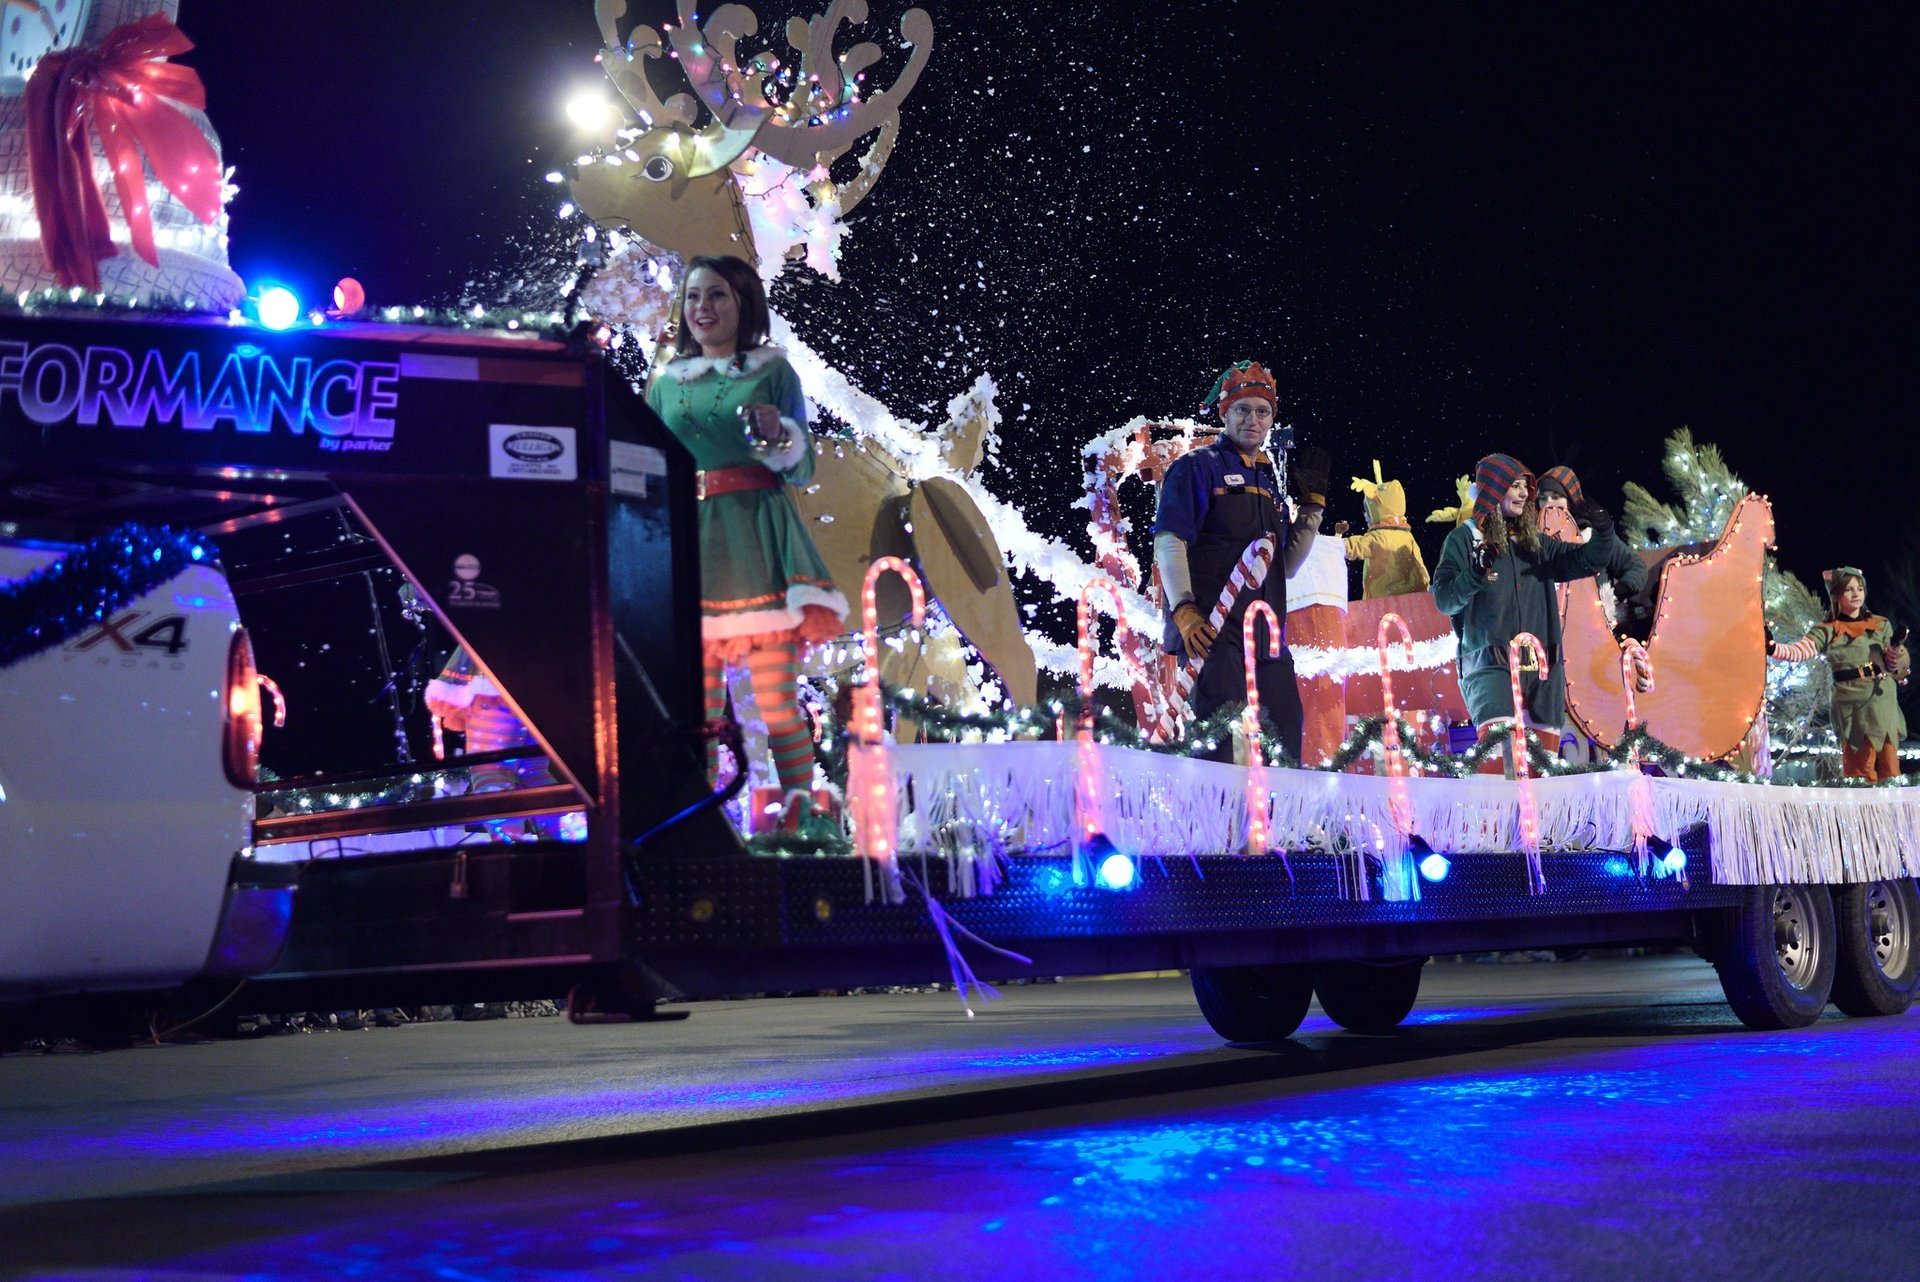 Rapid City Festival of Lights Parade in 2017 2020